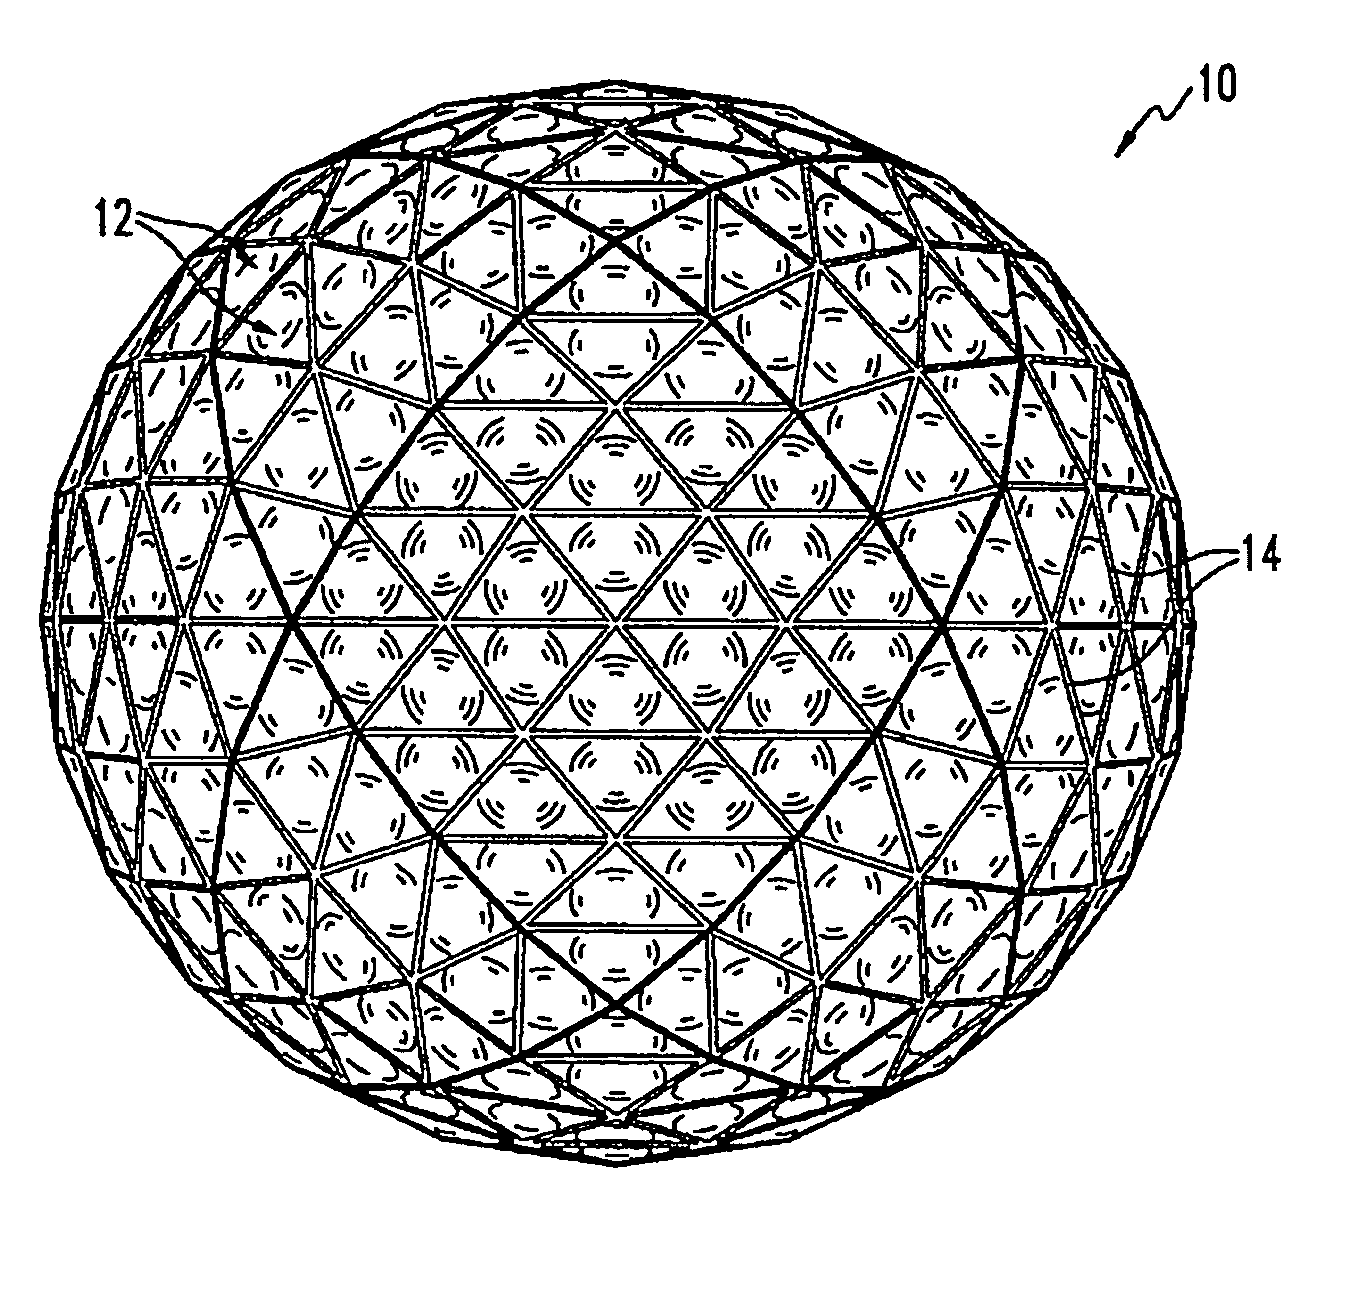 Drawn spheric polygonal Golf Patent ball with dimples